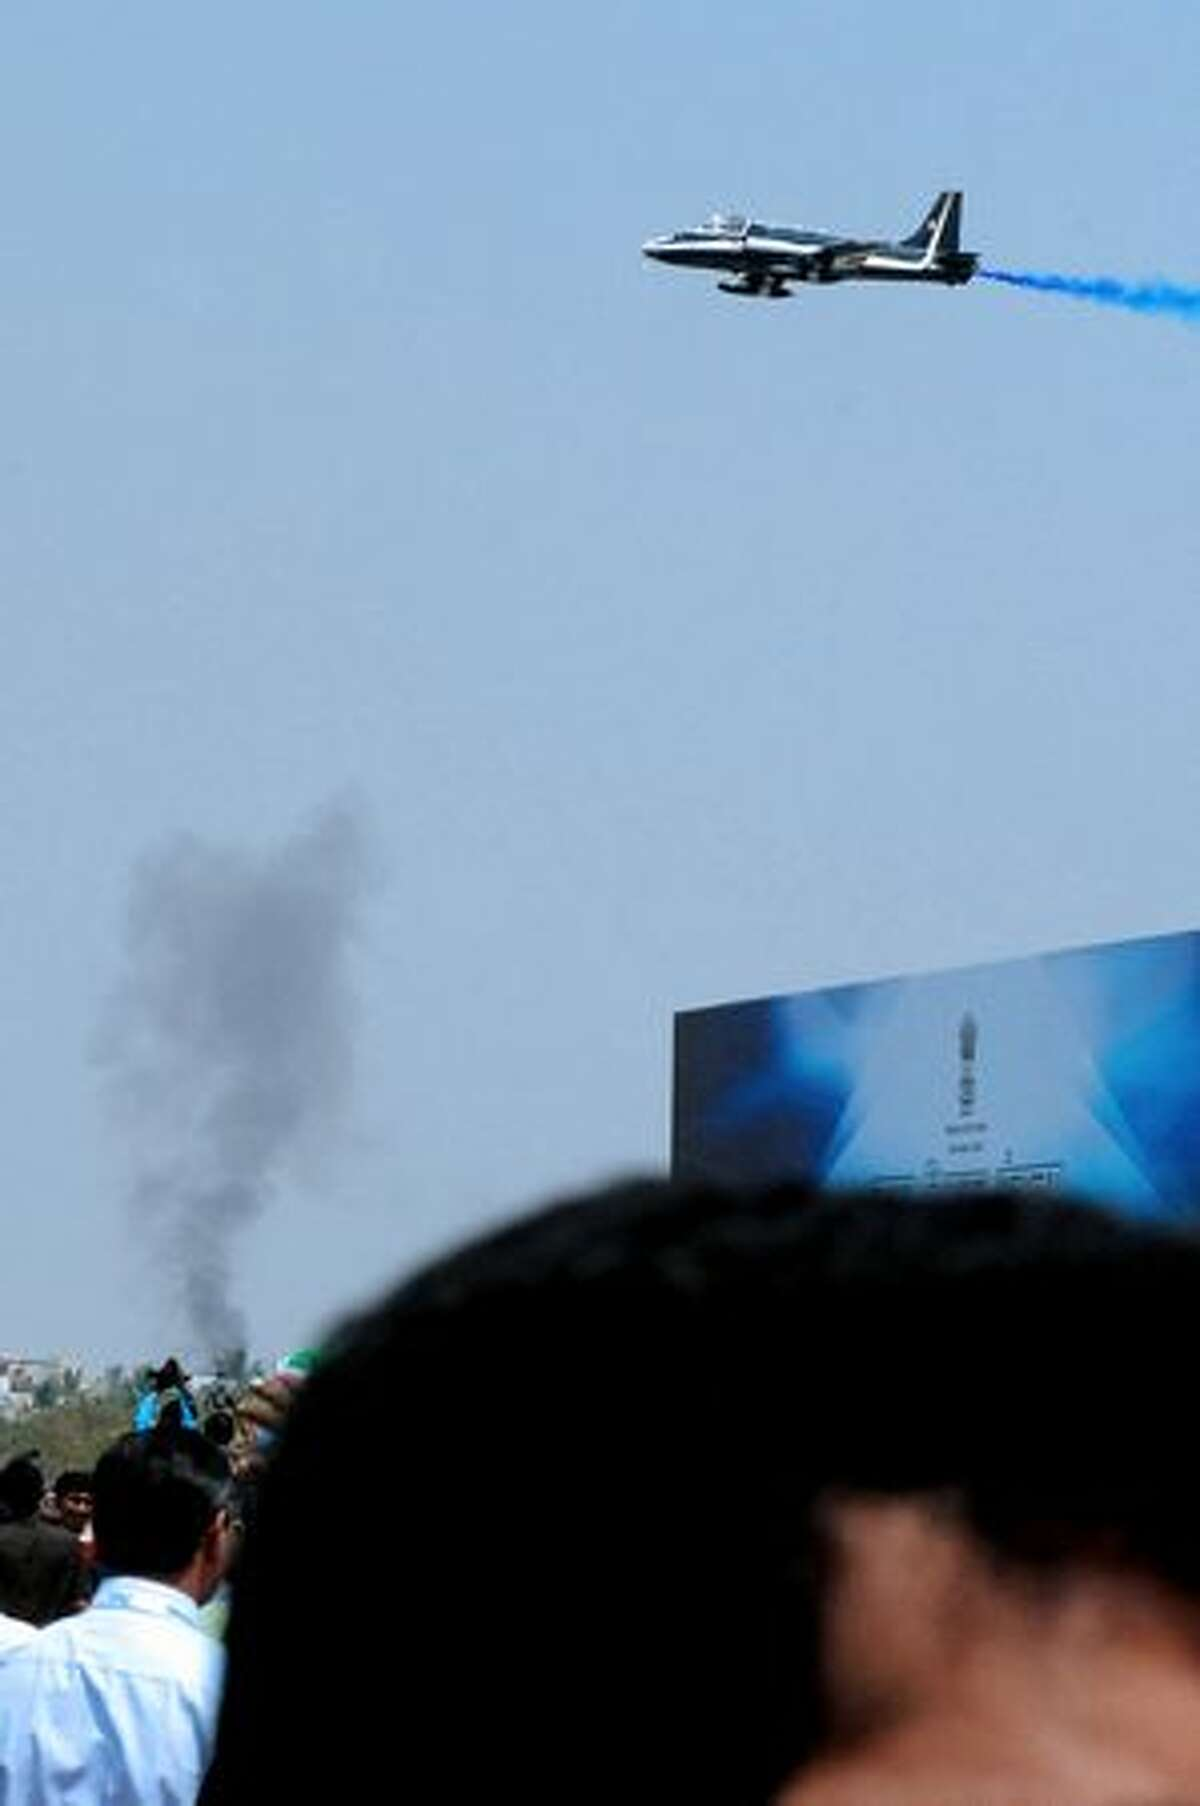 An aircraft of The Indian Naval Aerobatic Team 'Surya Kiran' flies over rising smoke after a colleague crashed an aircraft during the India Aviation 2010 show at Begumpet Airport in Hyderabad on March 3, 2010. A navy aircraft taking part in an acrobatics show on the first day of an air show in the southern Indian city. The plane, a two-seater Kiran MK-II built by the state-run Hindustan Aeronautics, was part of a four-plane formation when it crashed. The accident occurred on the opening day of the India Aviation 2010 show, a five-day civil aviation exhibition.